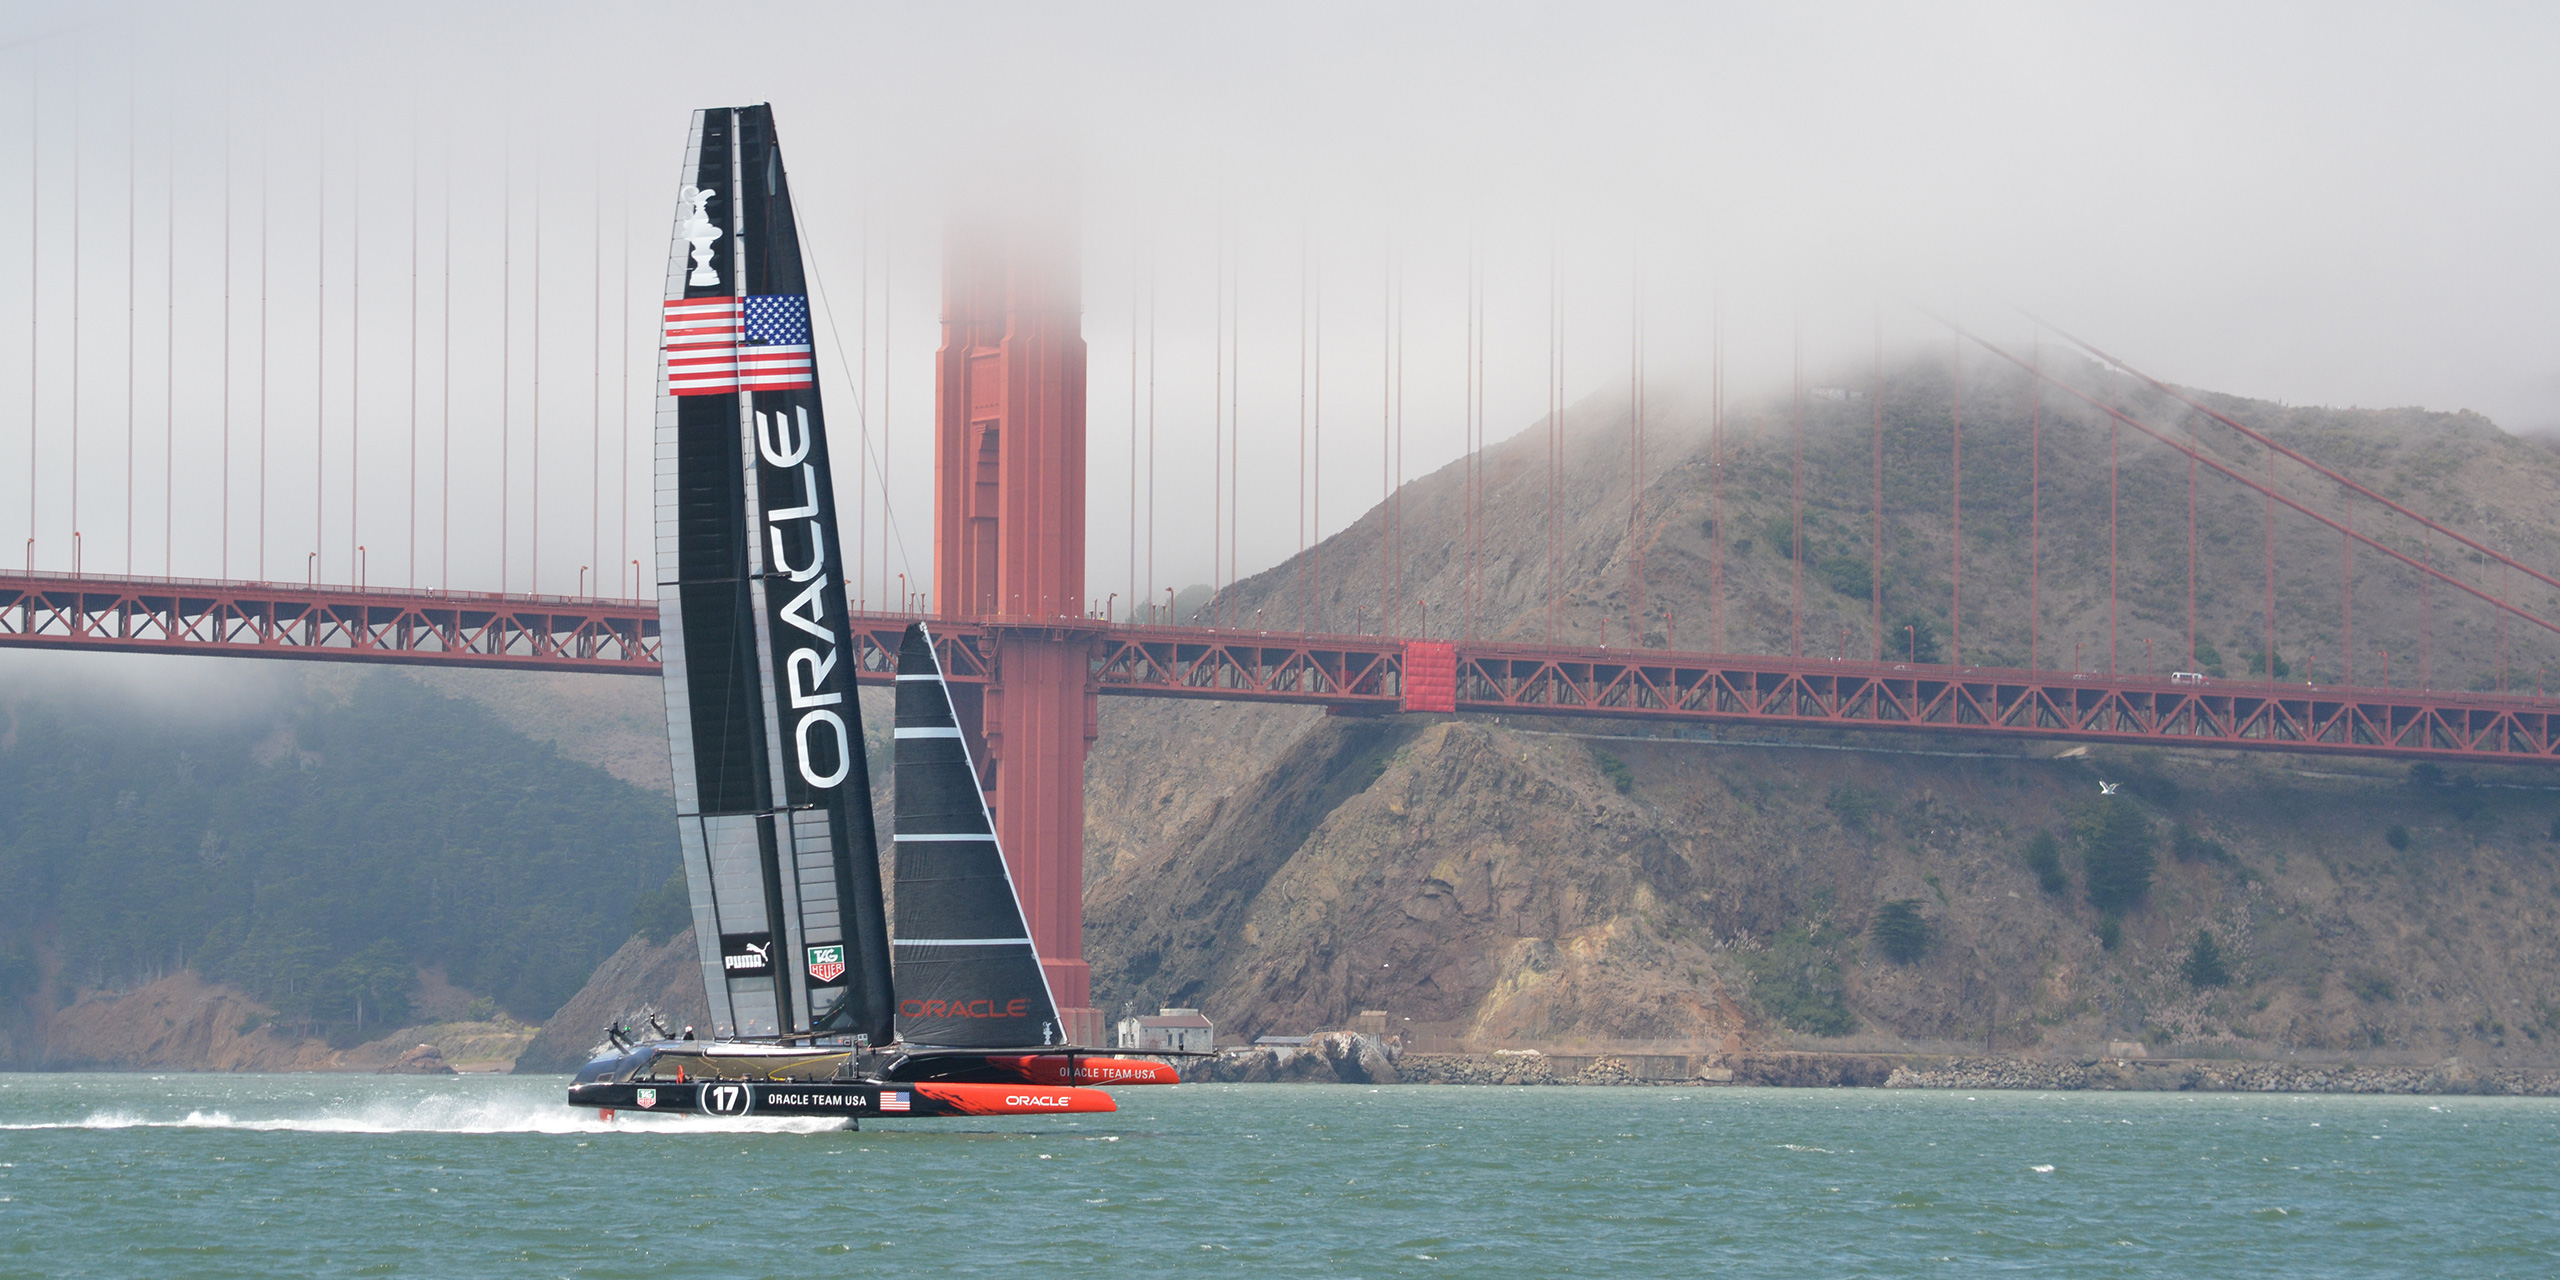 America's Cup 2013 Preview